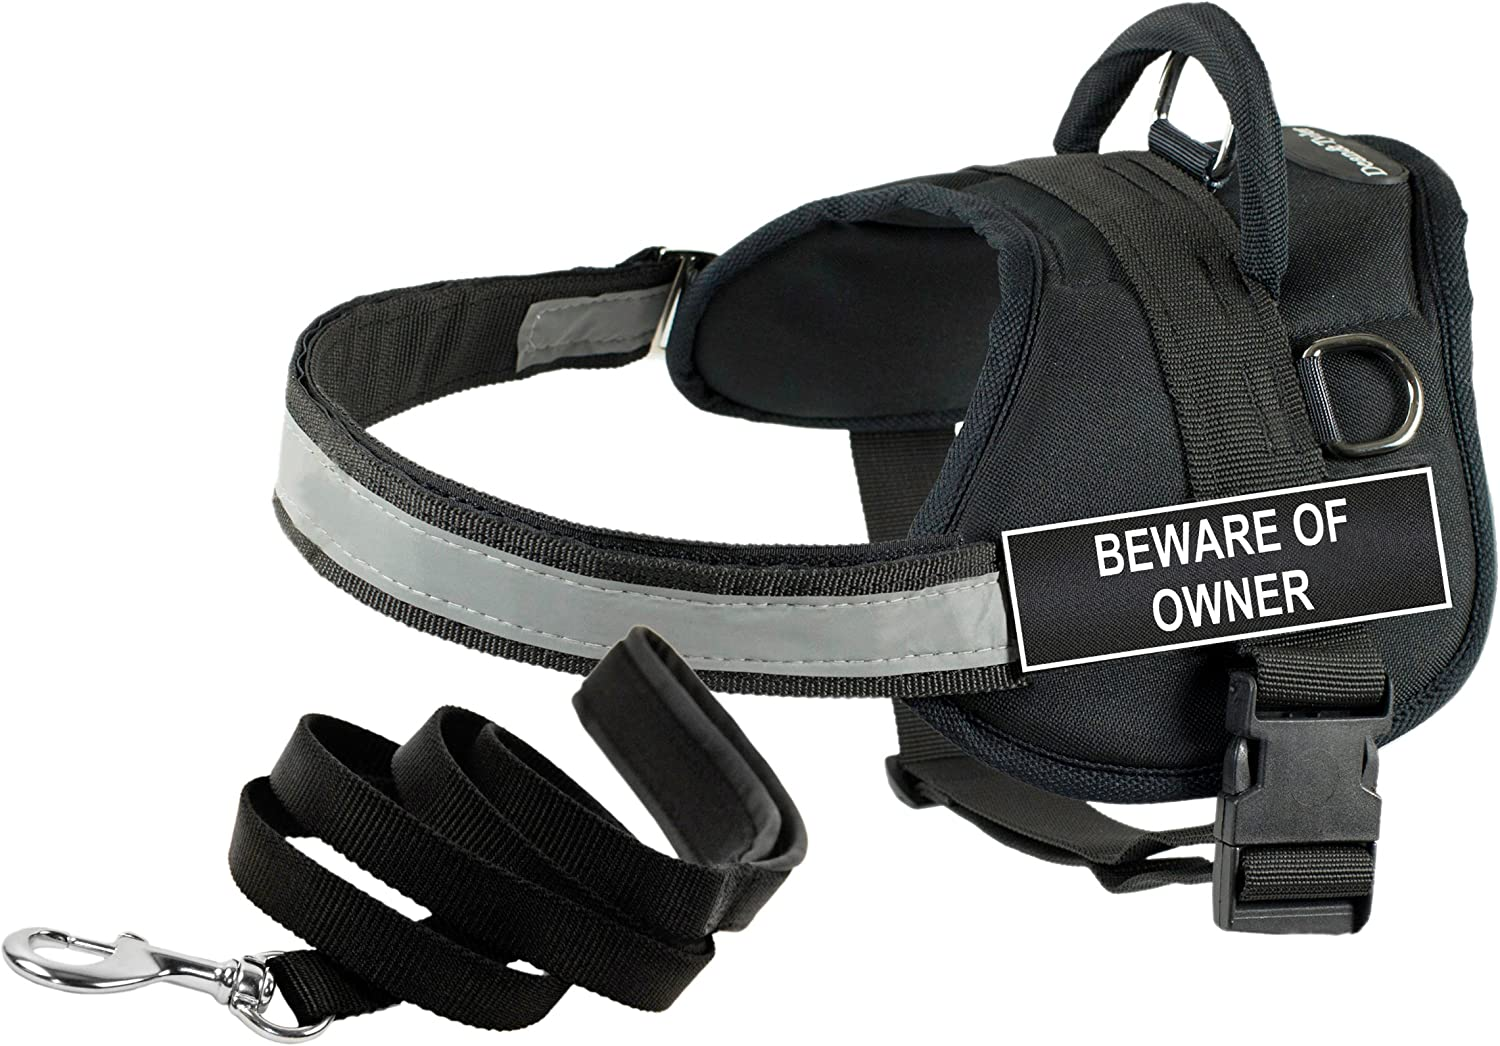 Dean & Tyler's DT Works BEWARE OF OWNER Harness, XXSmall, with 6 ft Padded Puppy Leash.